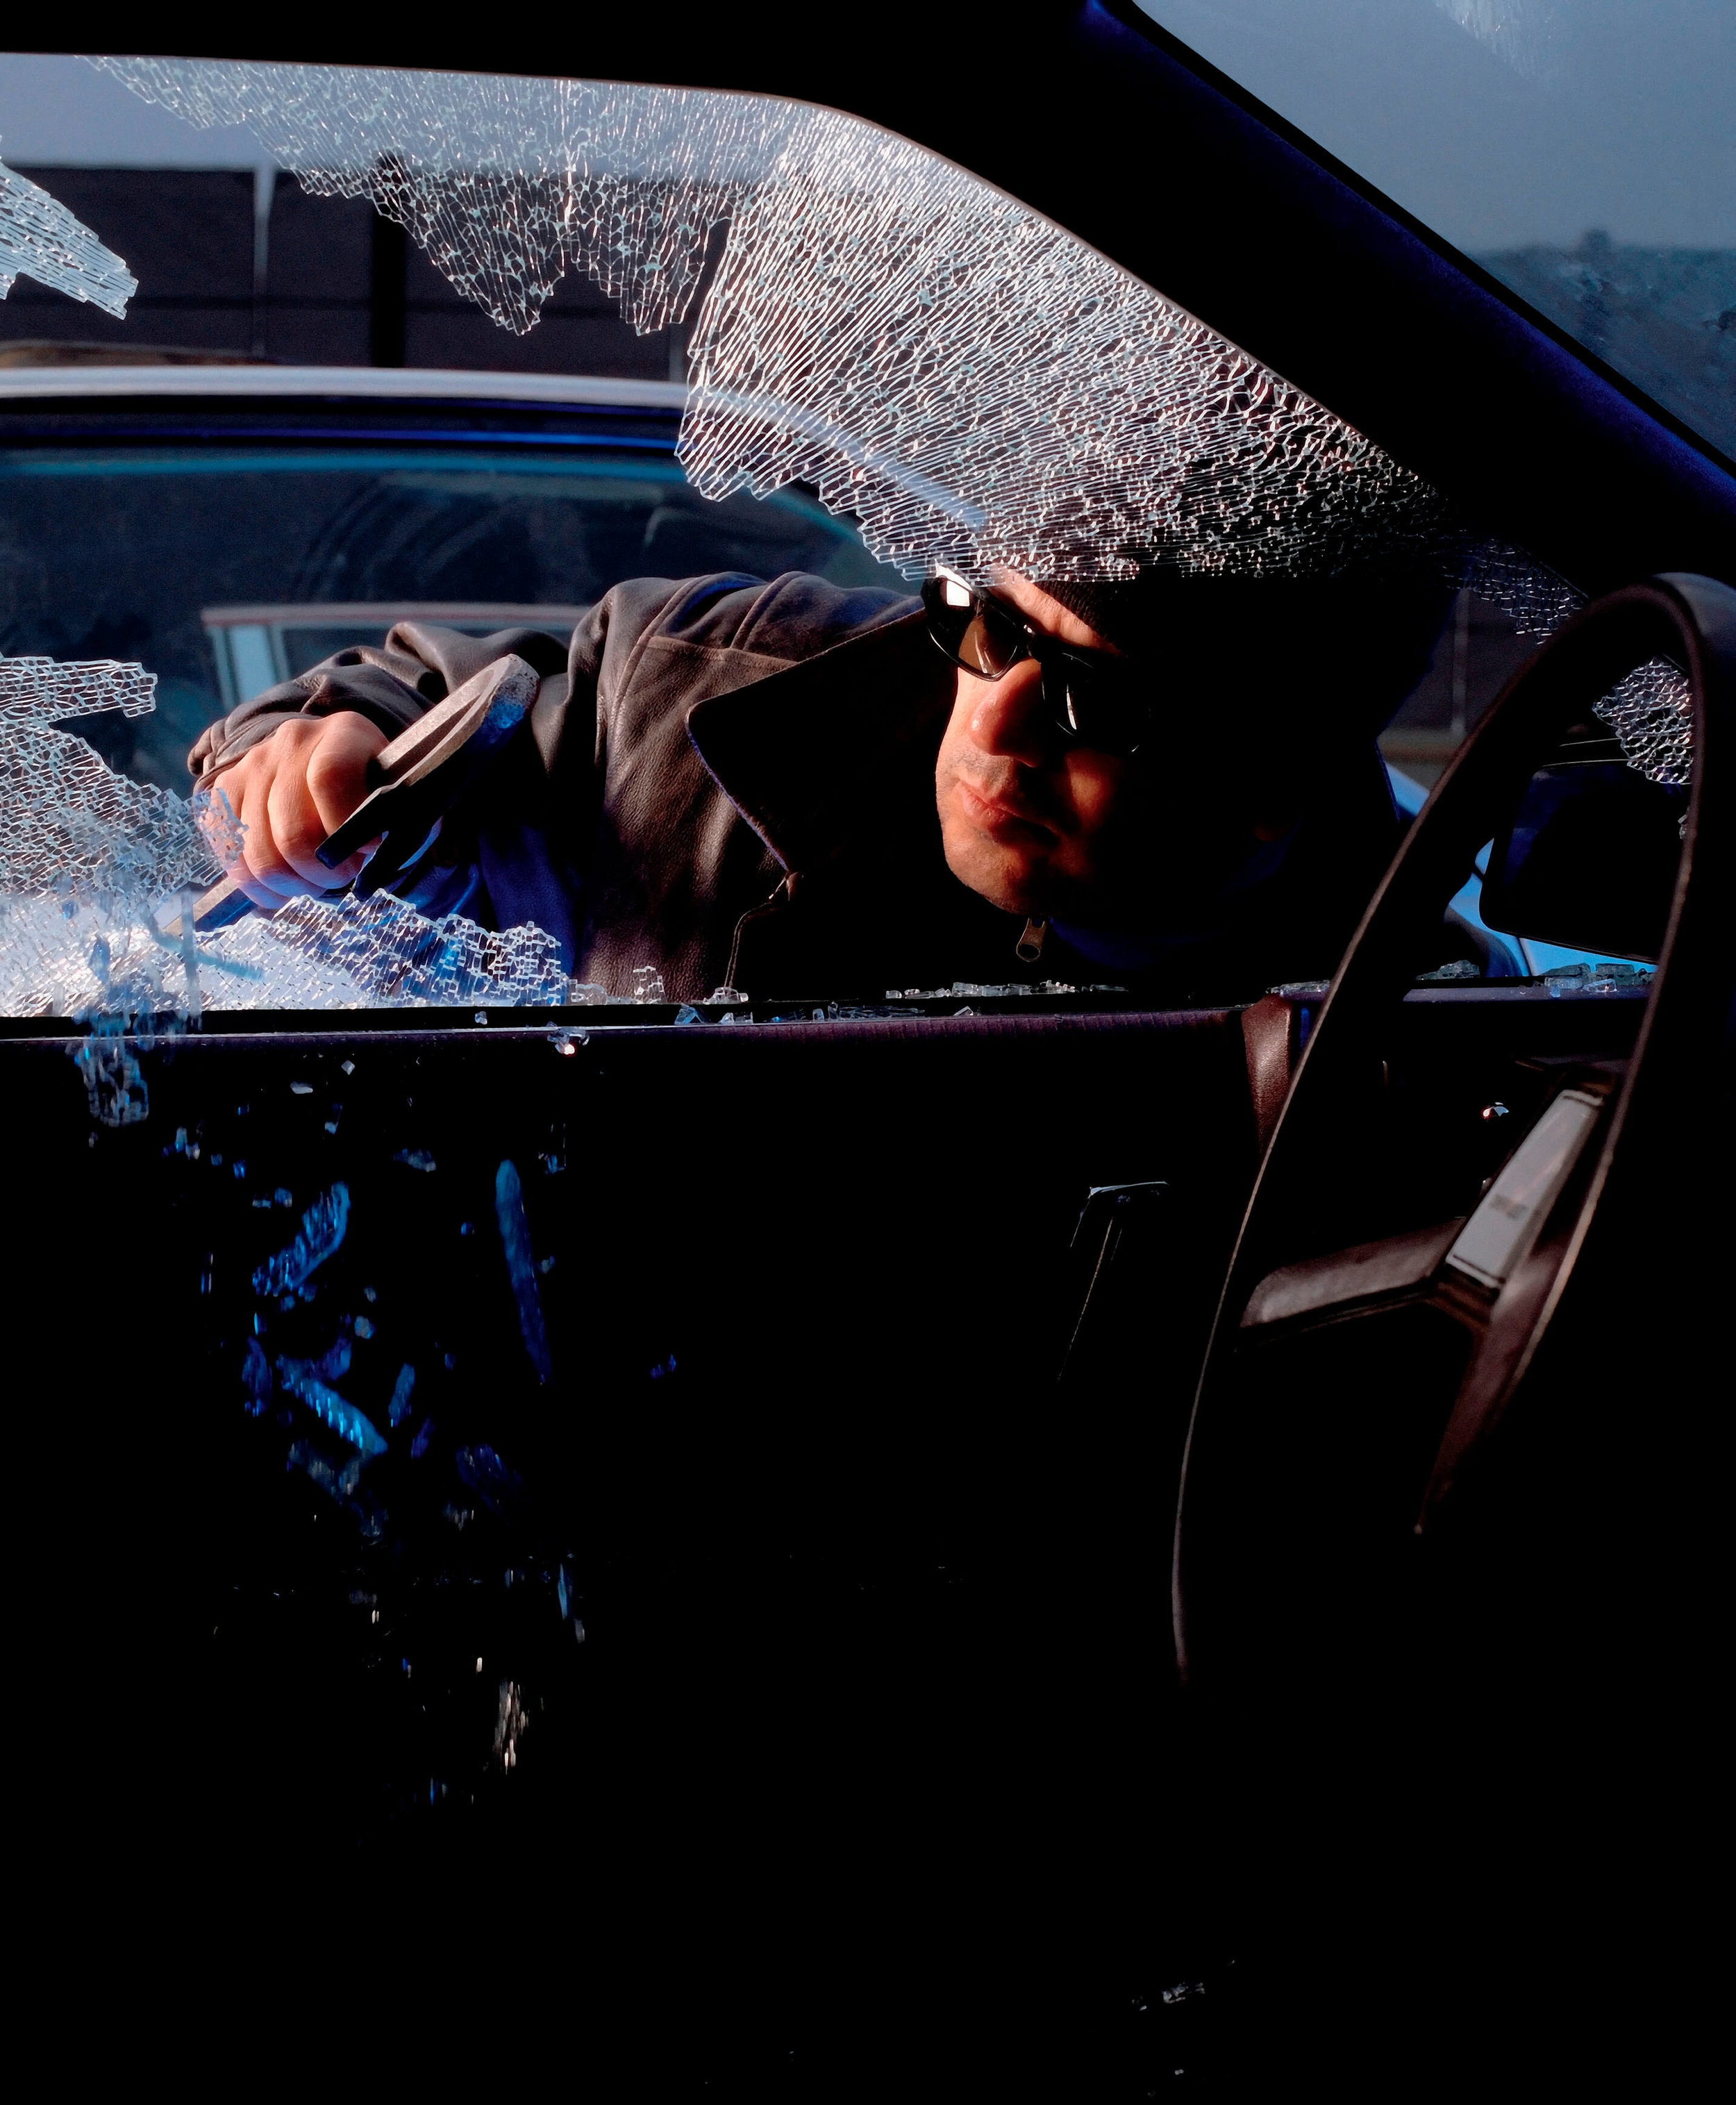 Audiosport has the best theft prevention for cars and car security systems in Escondido.